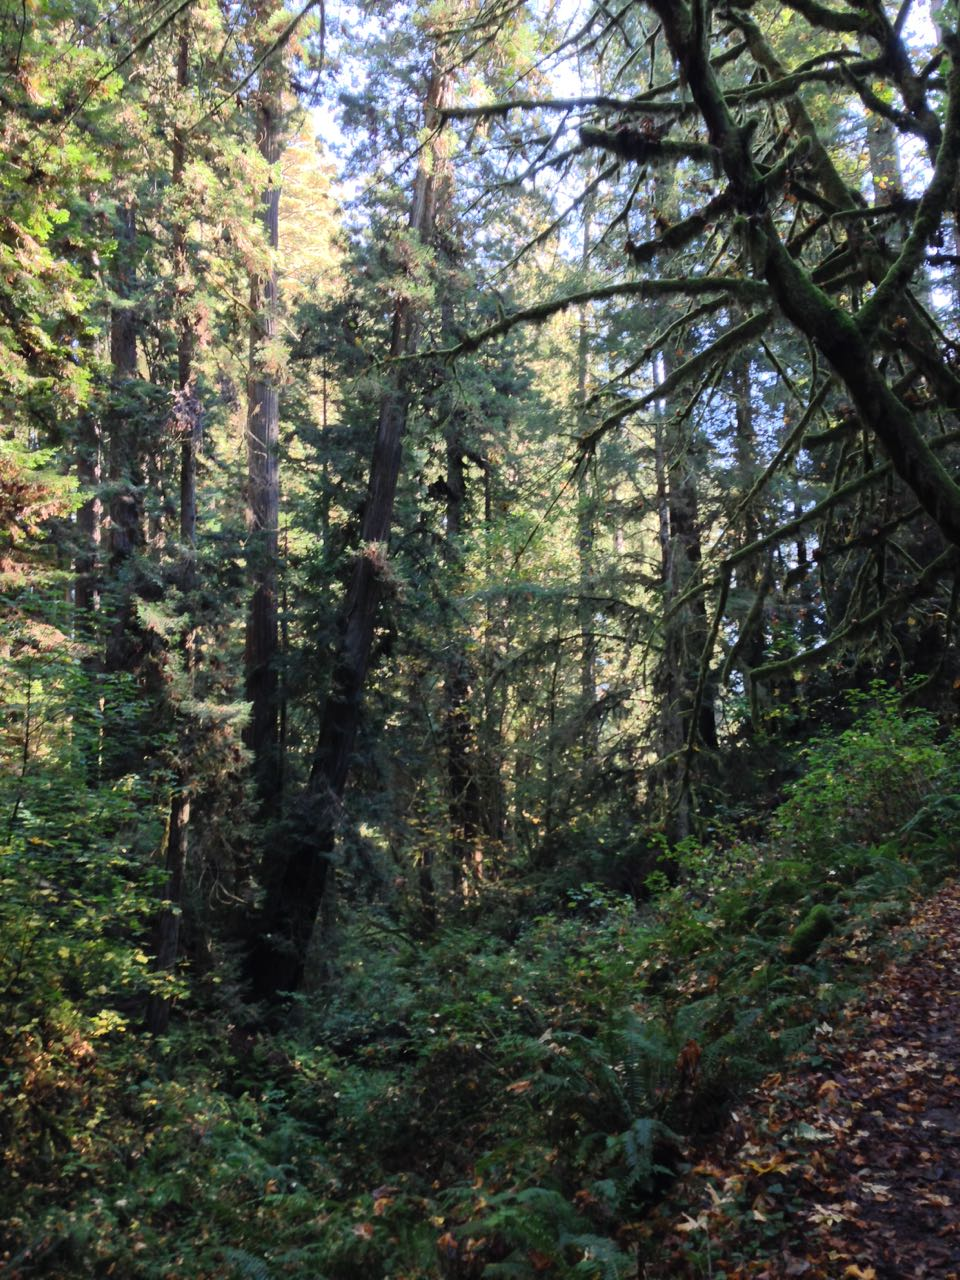 Redwoods 2017 10 08 229 Of 287